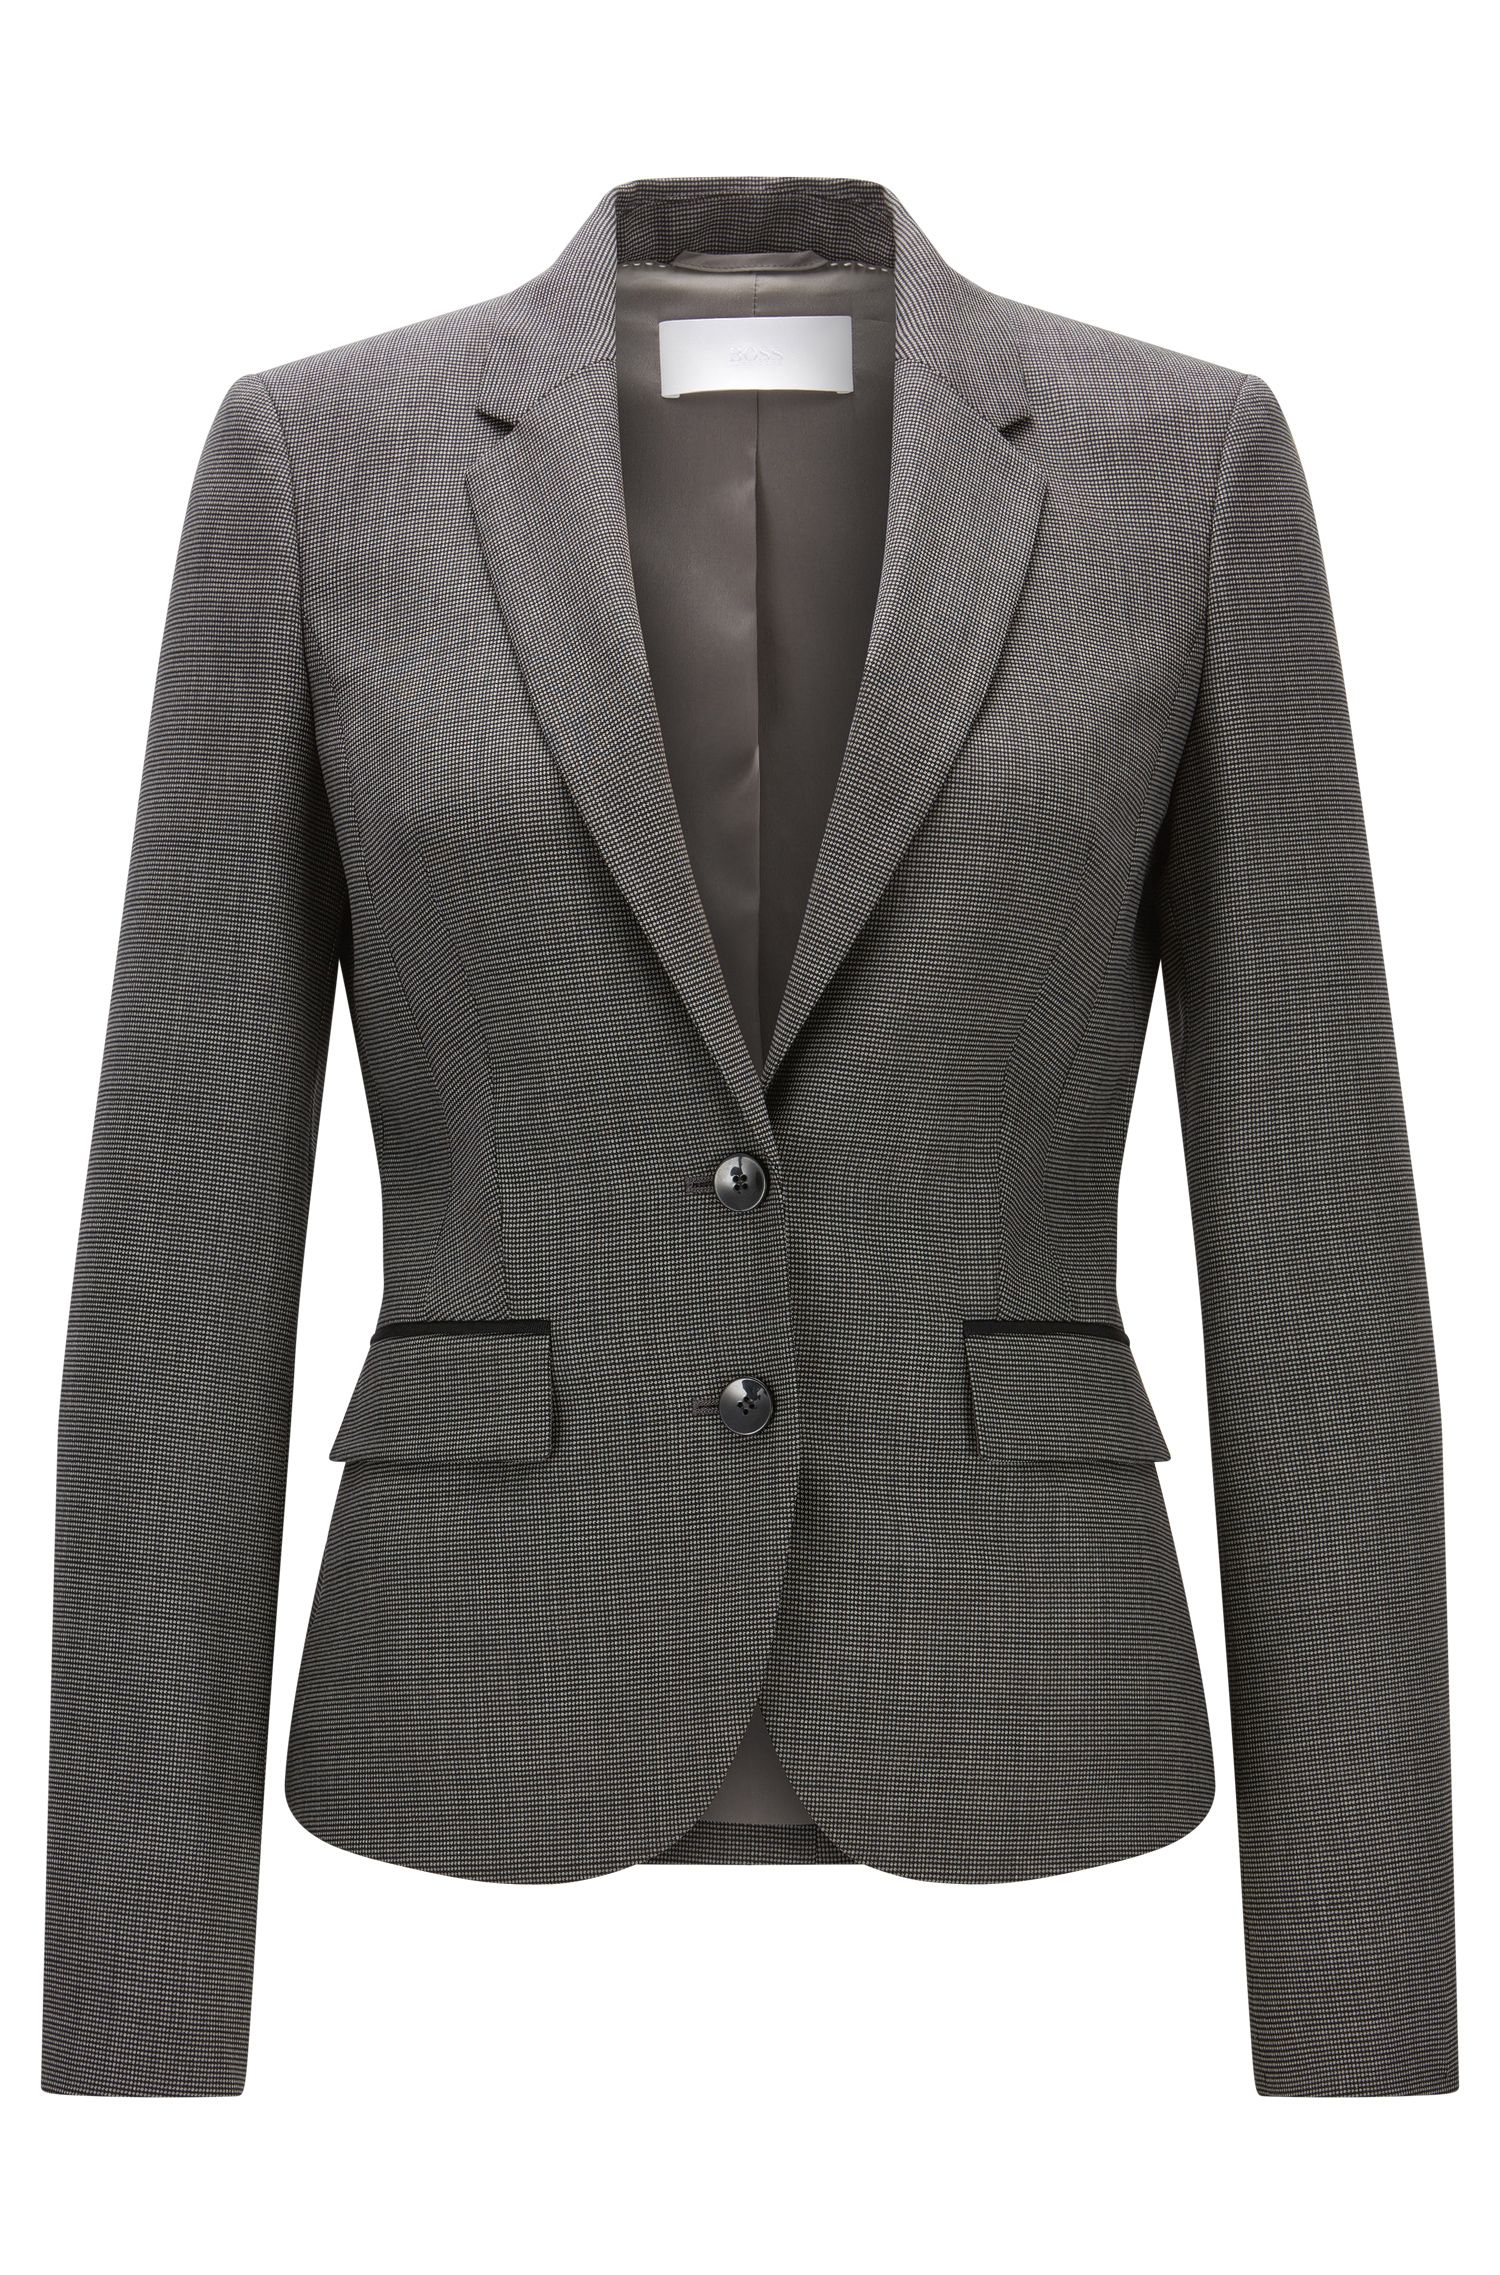 Birdseye Stretch Virgin Wool Blazer | Jylana, Patterned